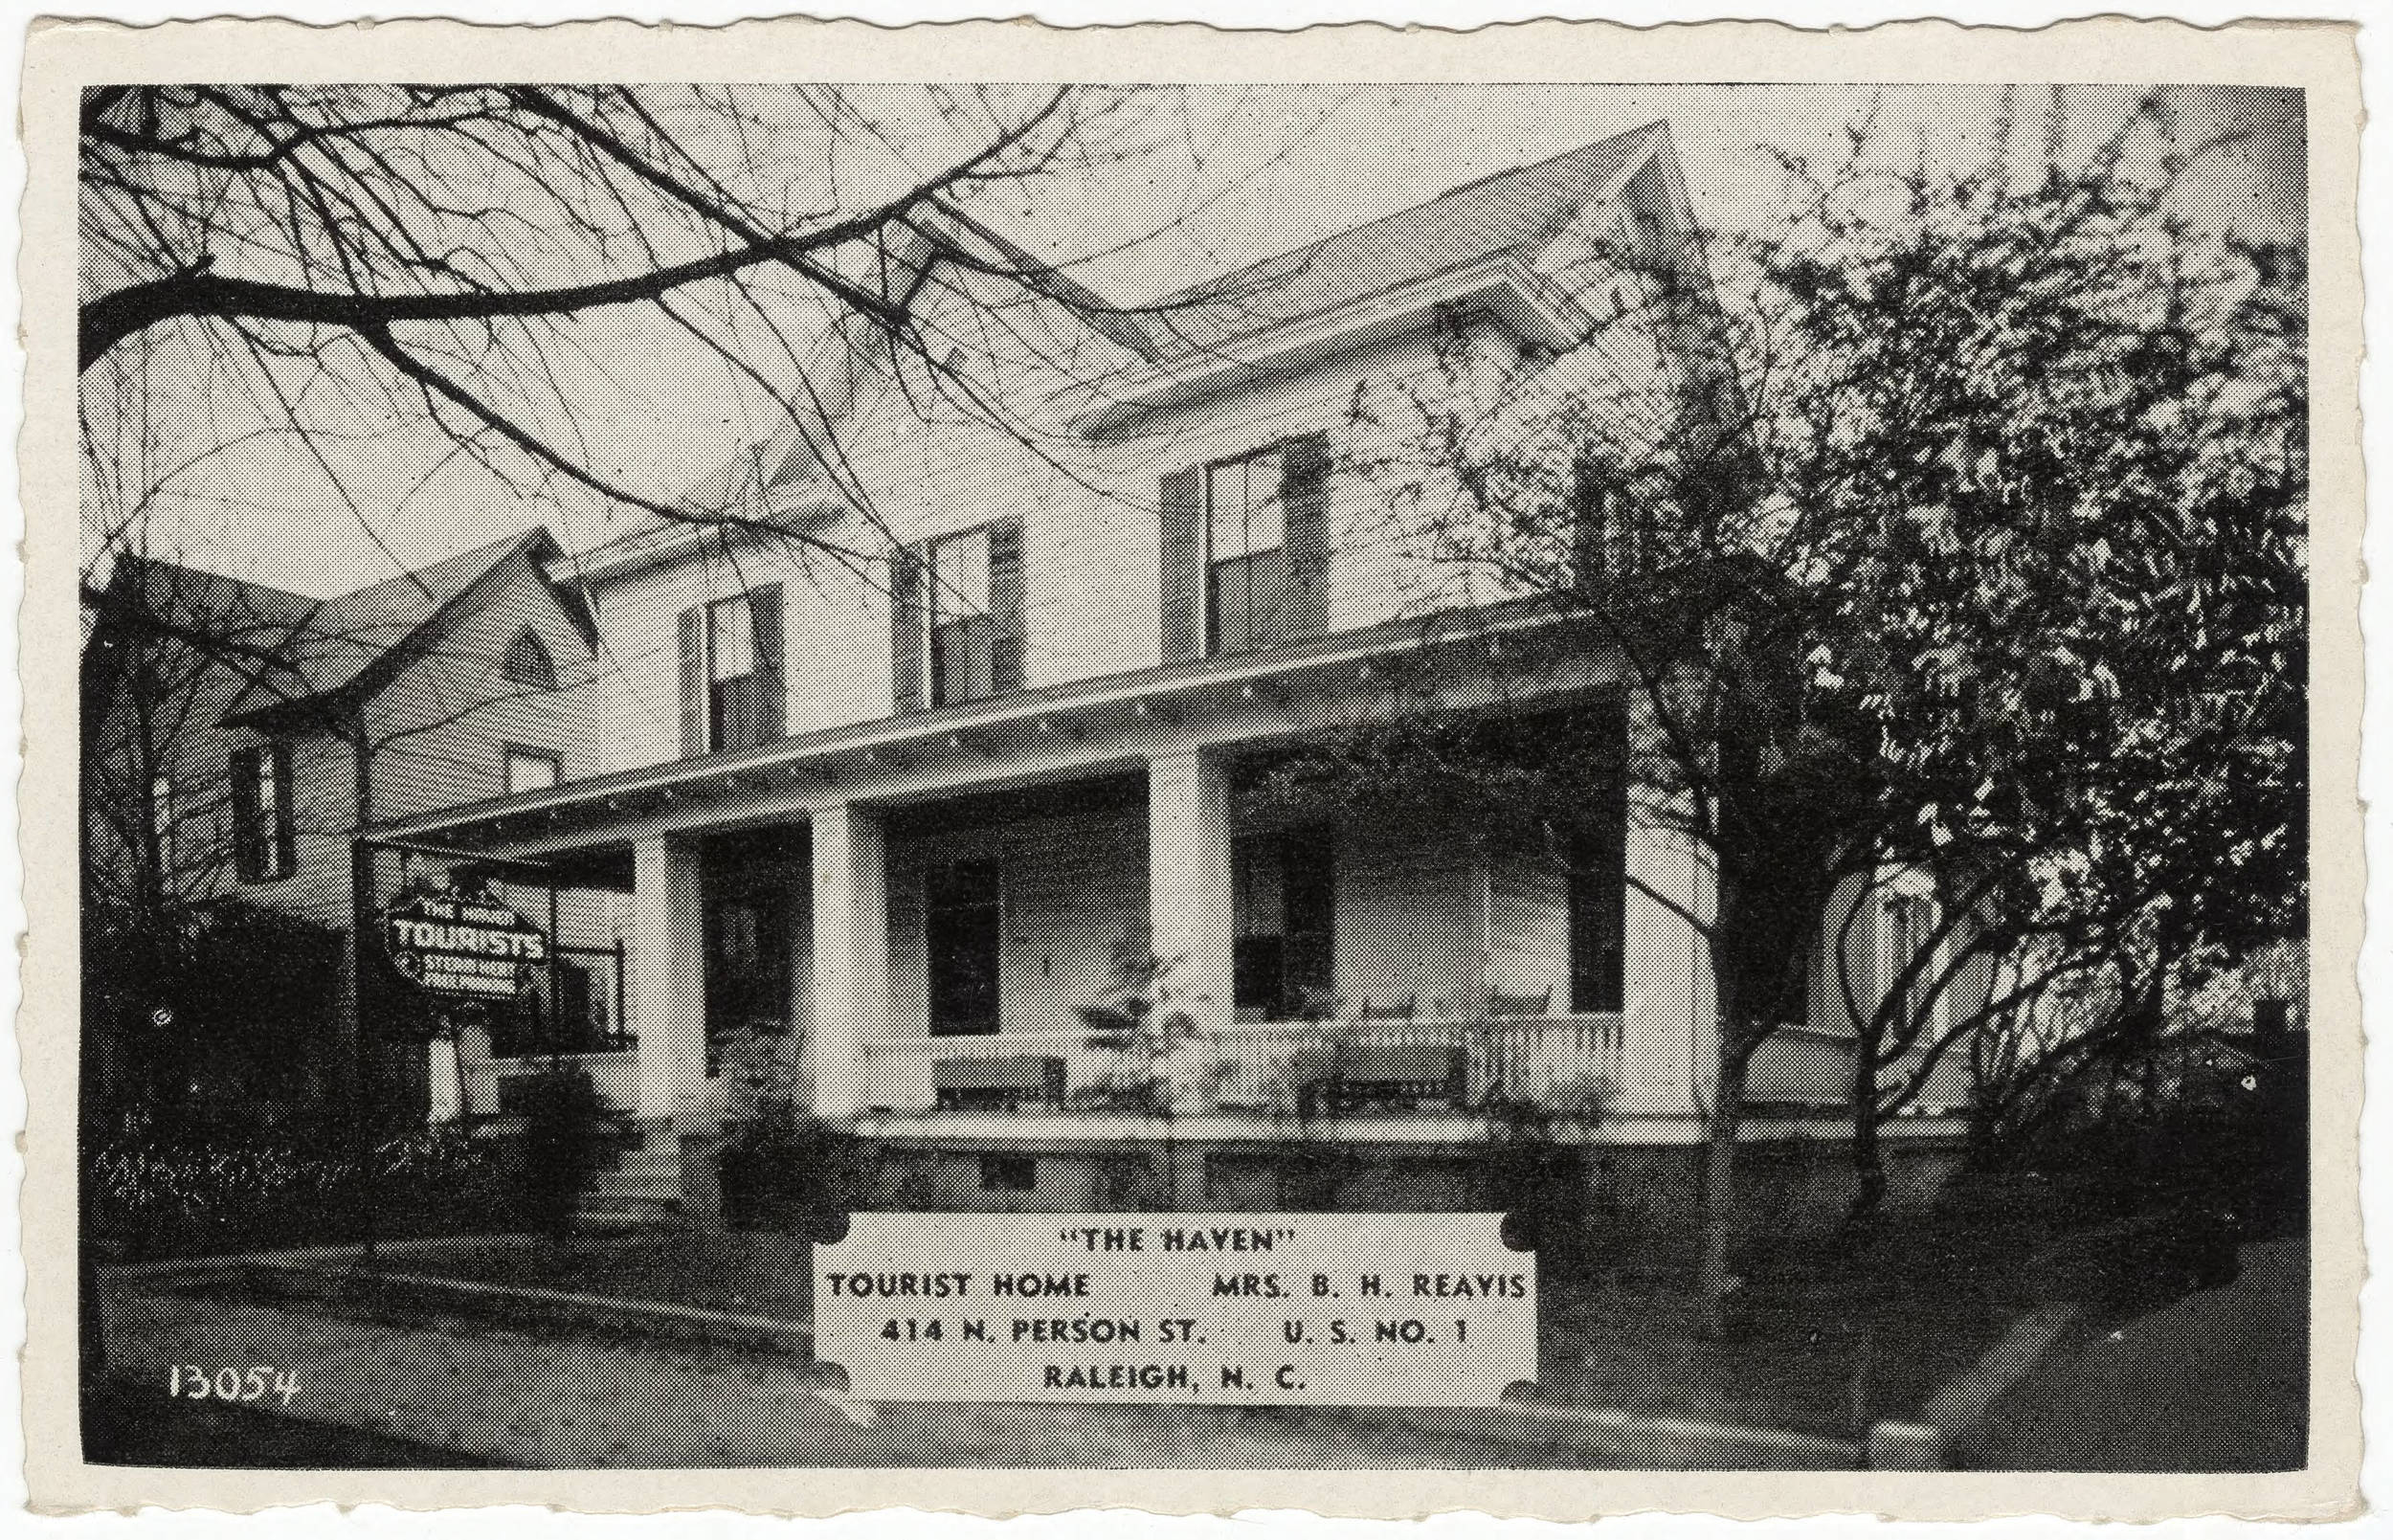 The Haven, Tourist Home, 414 N. Person Street, Raleigh, NC.